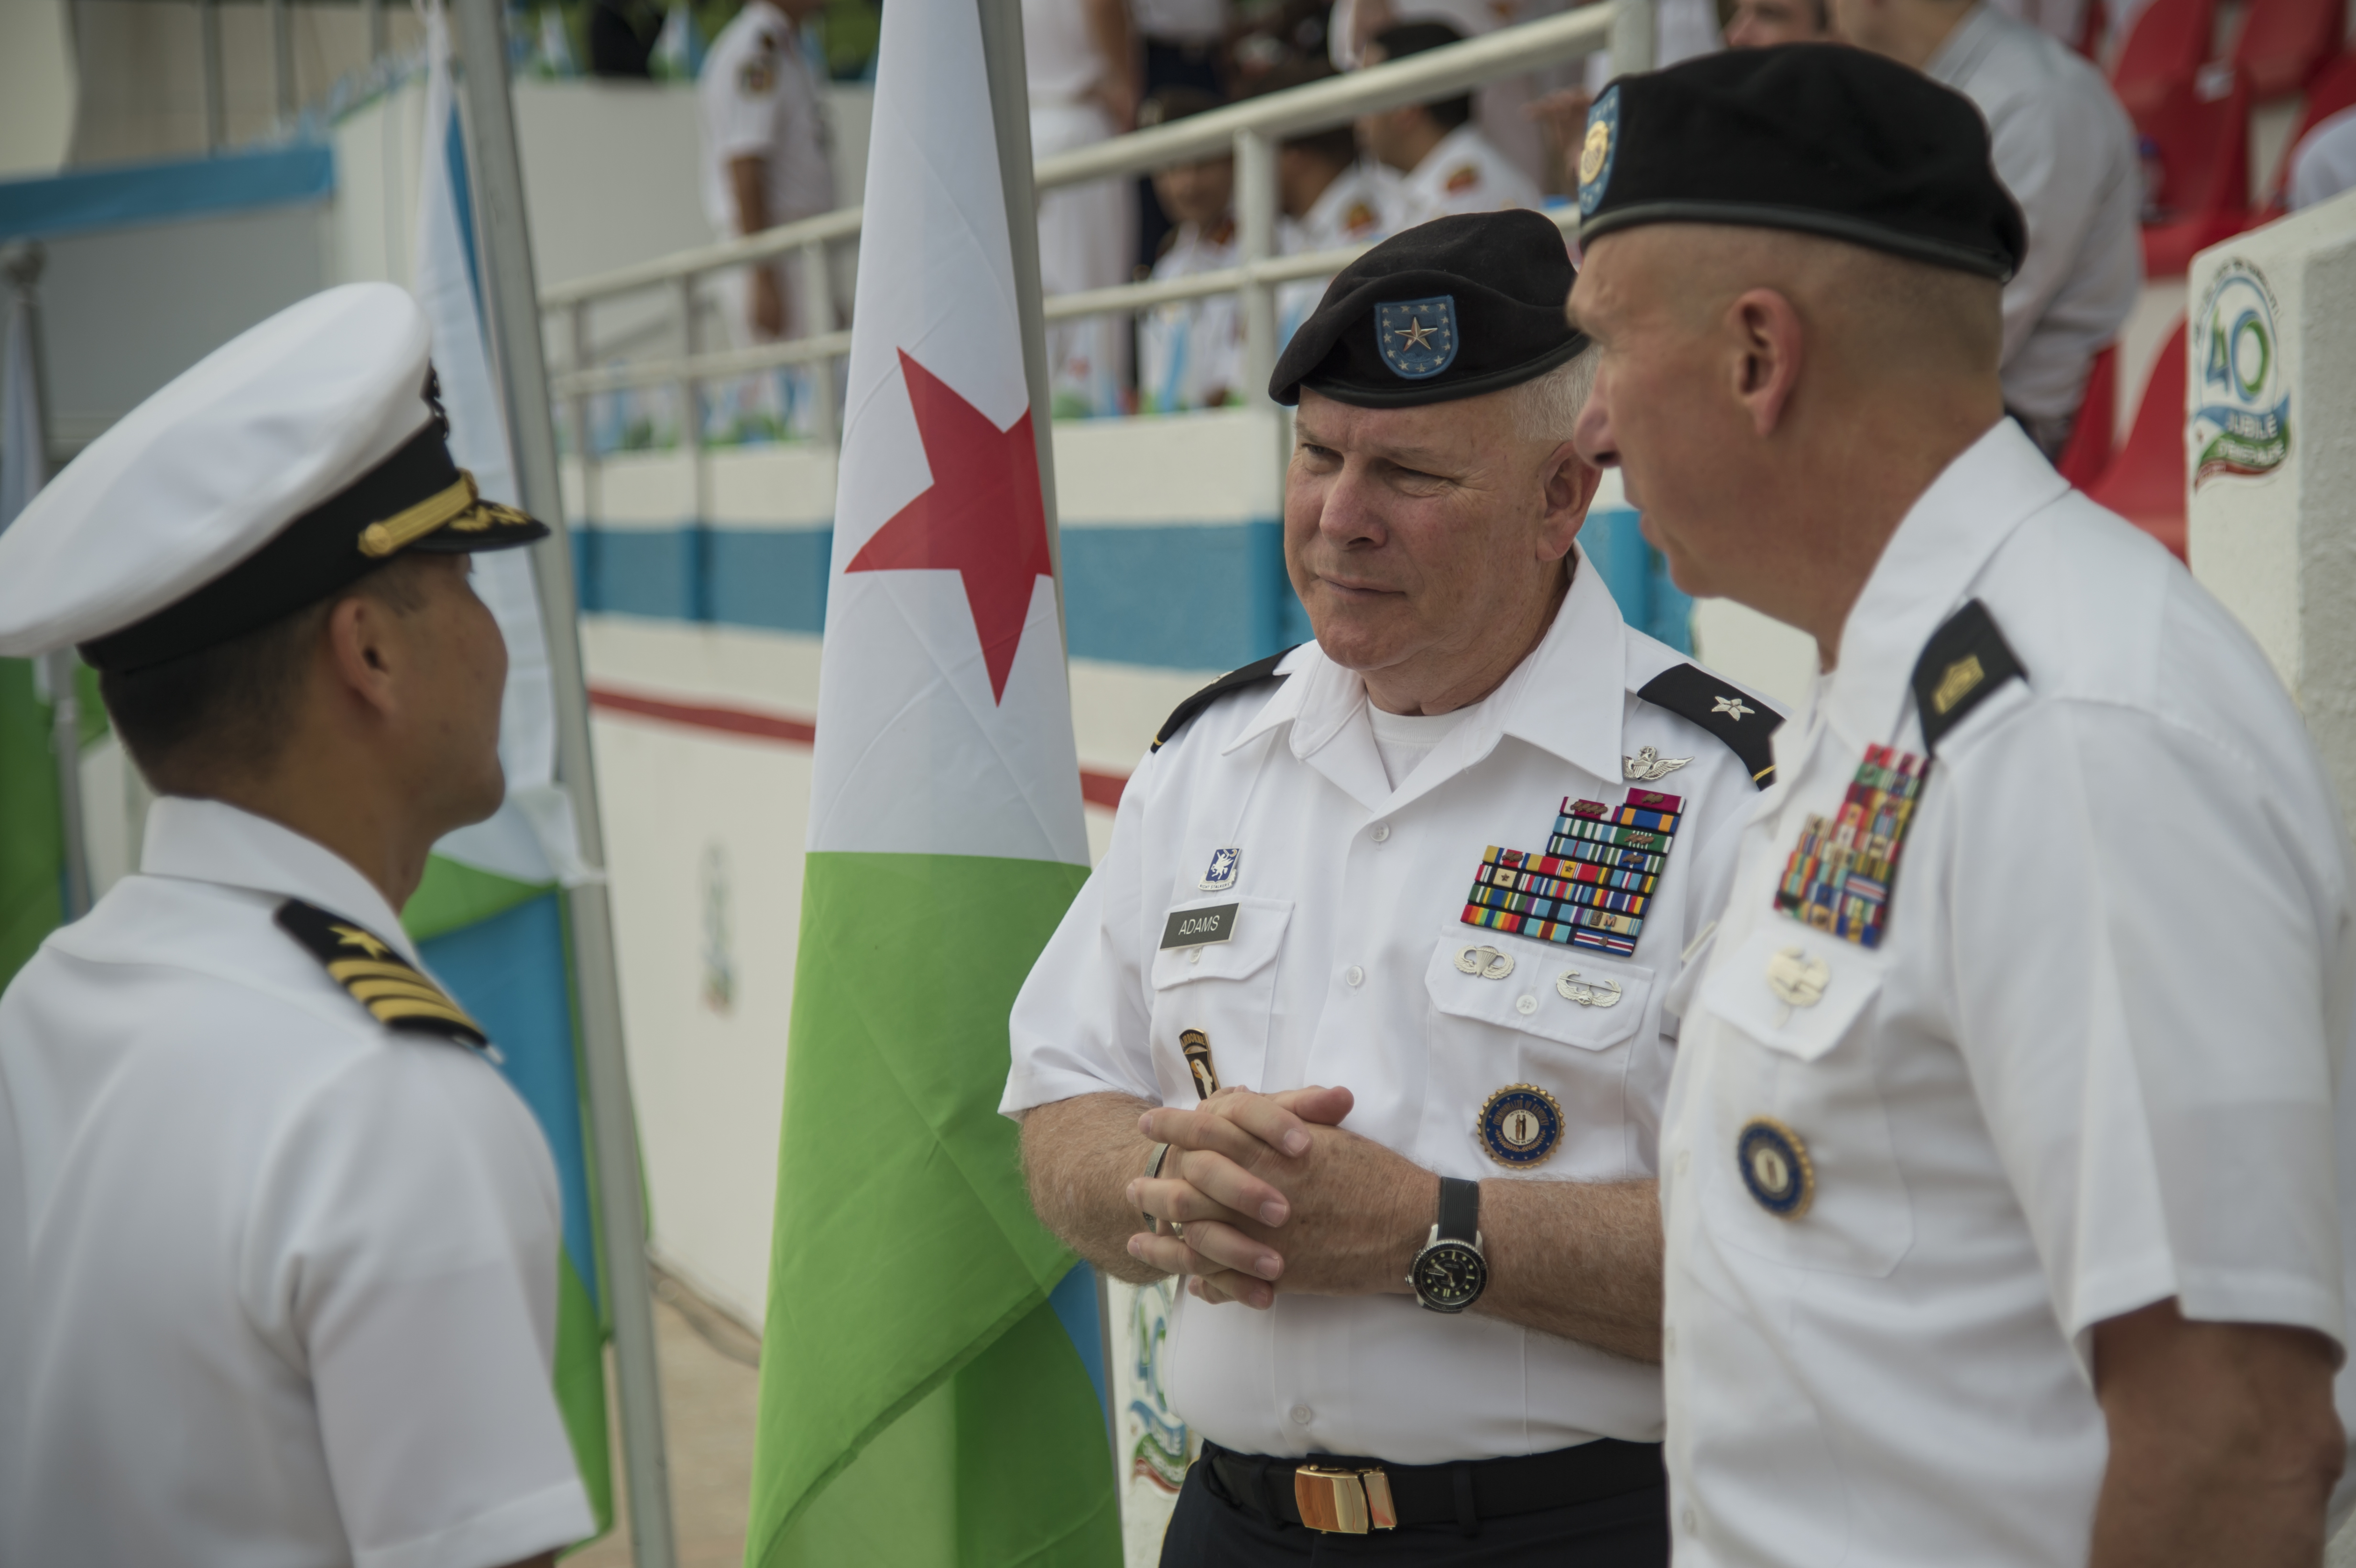 Brig. Gen. Benjamin F. Adams III, Commander Kentucky National Guard Land Component Command, attends along with U.S. service members from Camp Lemonnier, Djibouti, participating in a military parade in Djibouti City celebrating the country's 40th annual Independence Day, June 27, 2017. The Kentucky National Guard is partnered with Djibouti in the State Partnership Program. Hosted by the president of Djibouti, Ismail Omar Guelleh, the parade is held annually to mark Djibouti's declaration of independence from France.  In addition to the Djiboutian Armed Forces, service members from Italy, France, Japan, China and the U.S. also marched in the parade. The event offered an opportunity for the militaries of various nations with a presence in Djibouti to show support for shared goals in the region, including security and stability. (U.S. Air National Guard photo by Tech. Sgt. Joe Harwood)